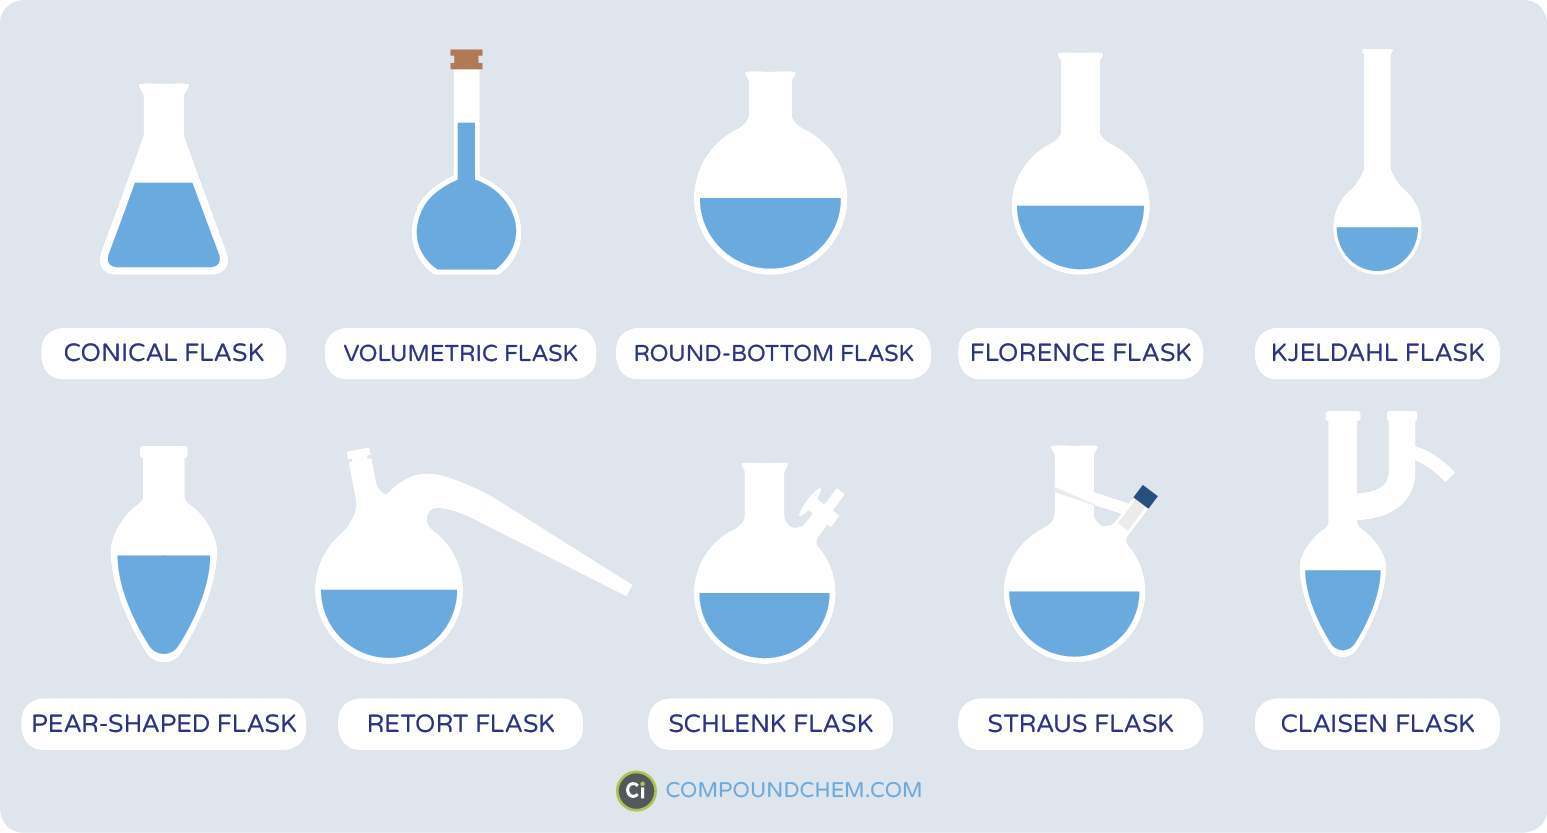 Glassware In The Laboratory Comes In A Range Of Different